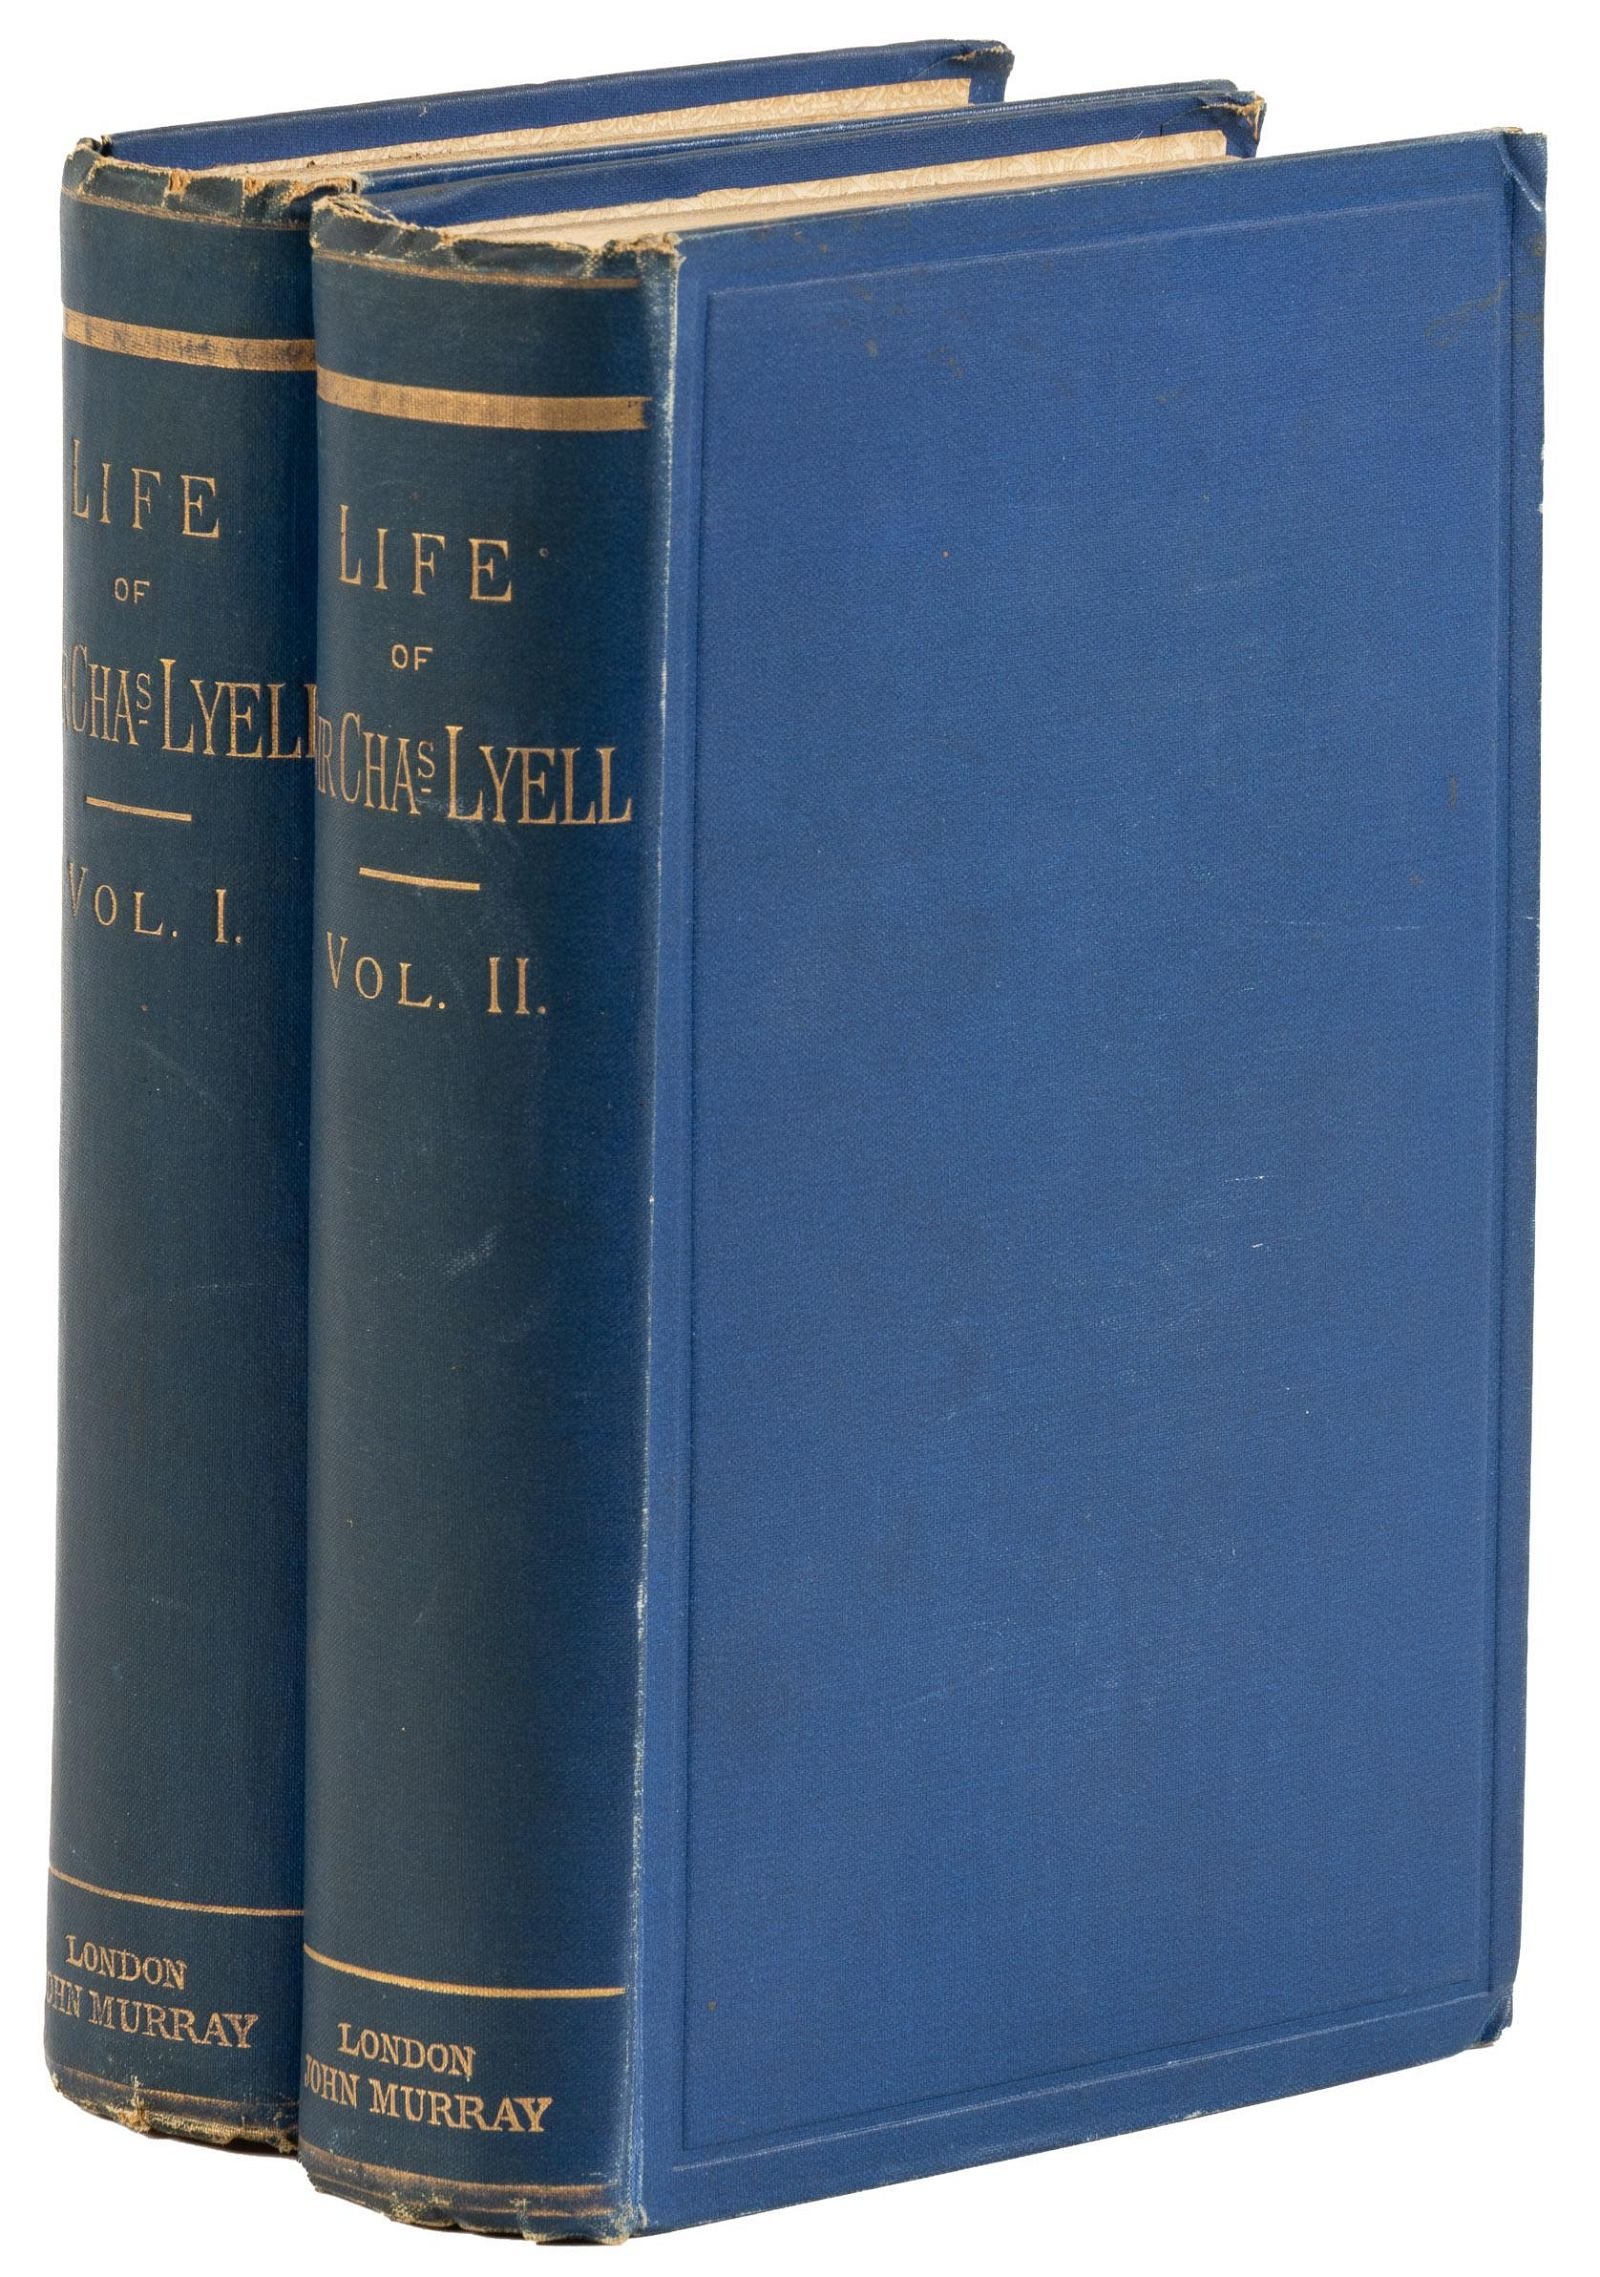 Life and Letters of Charles Lyell, 1881